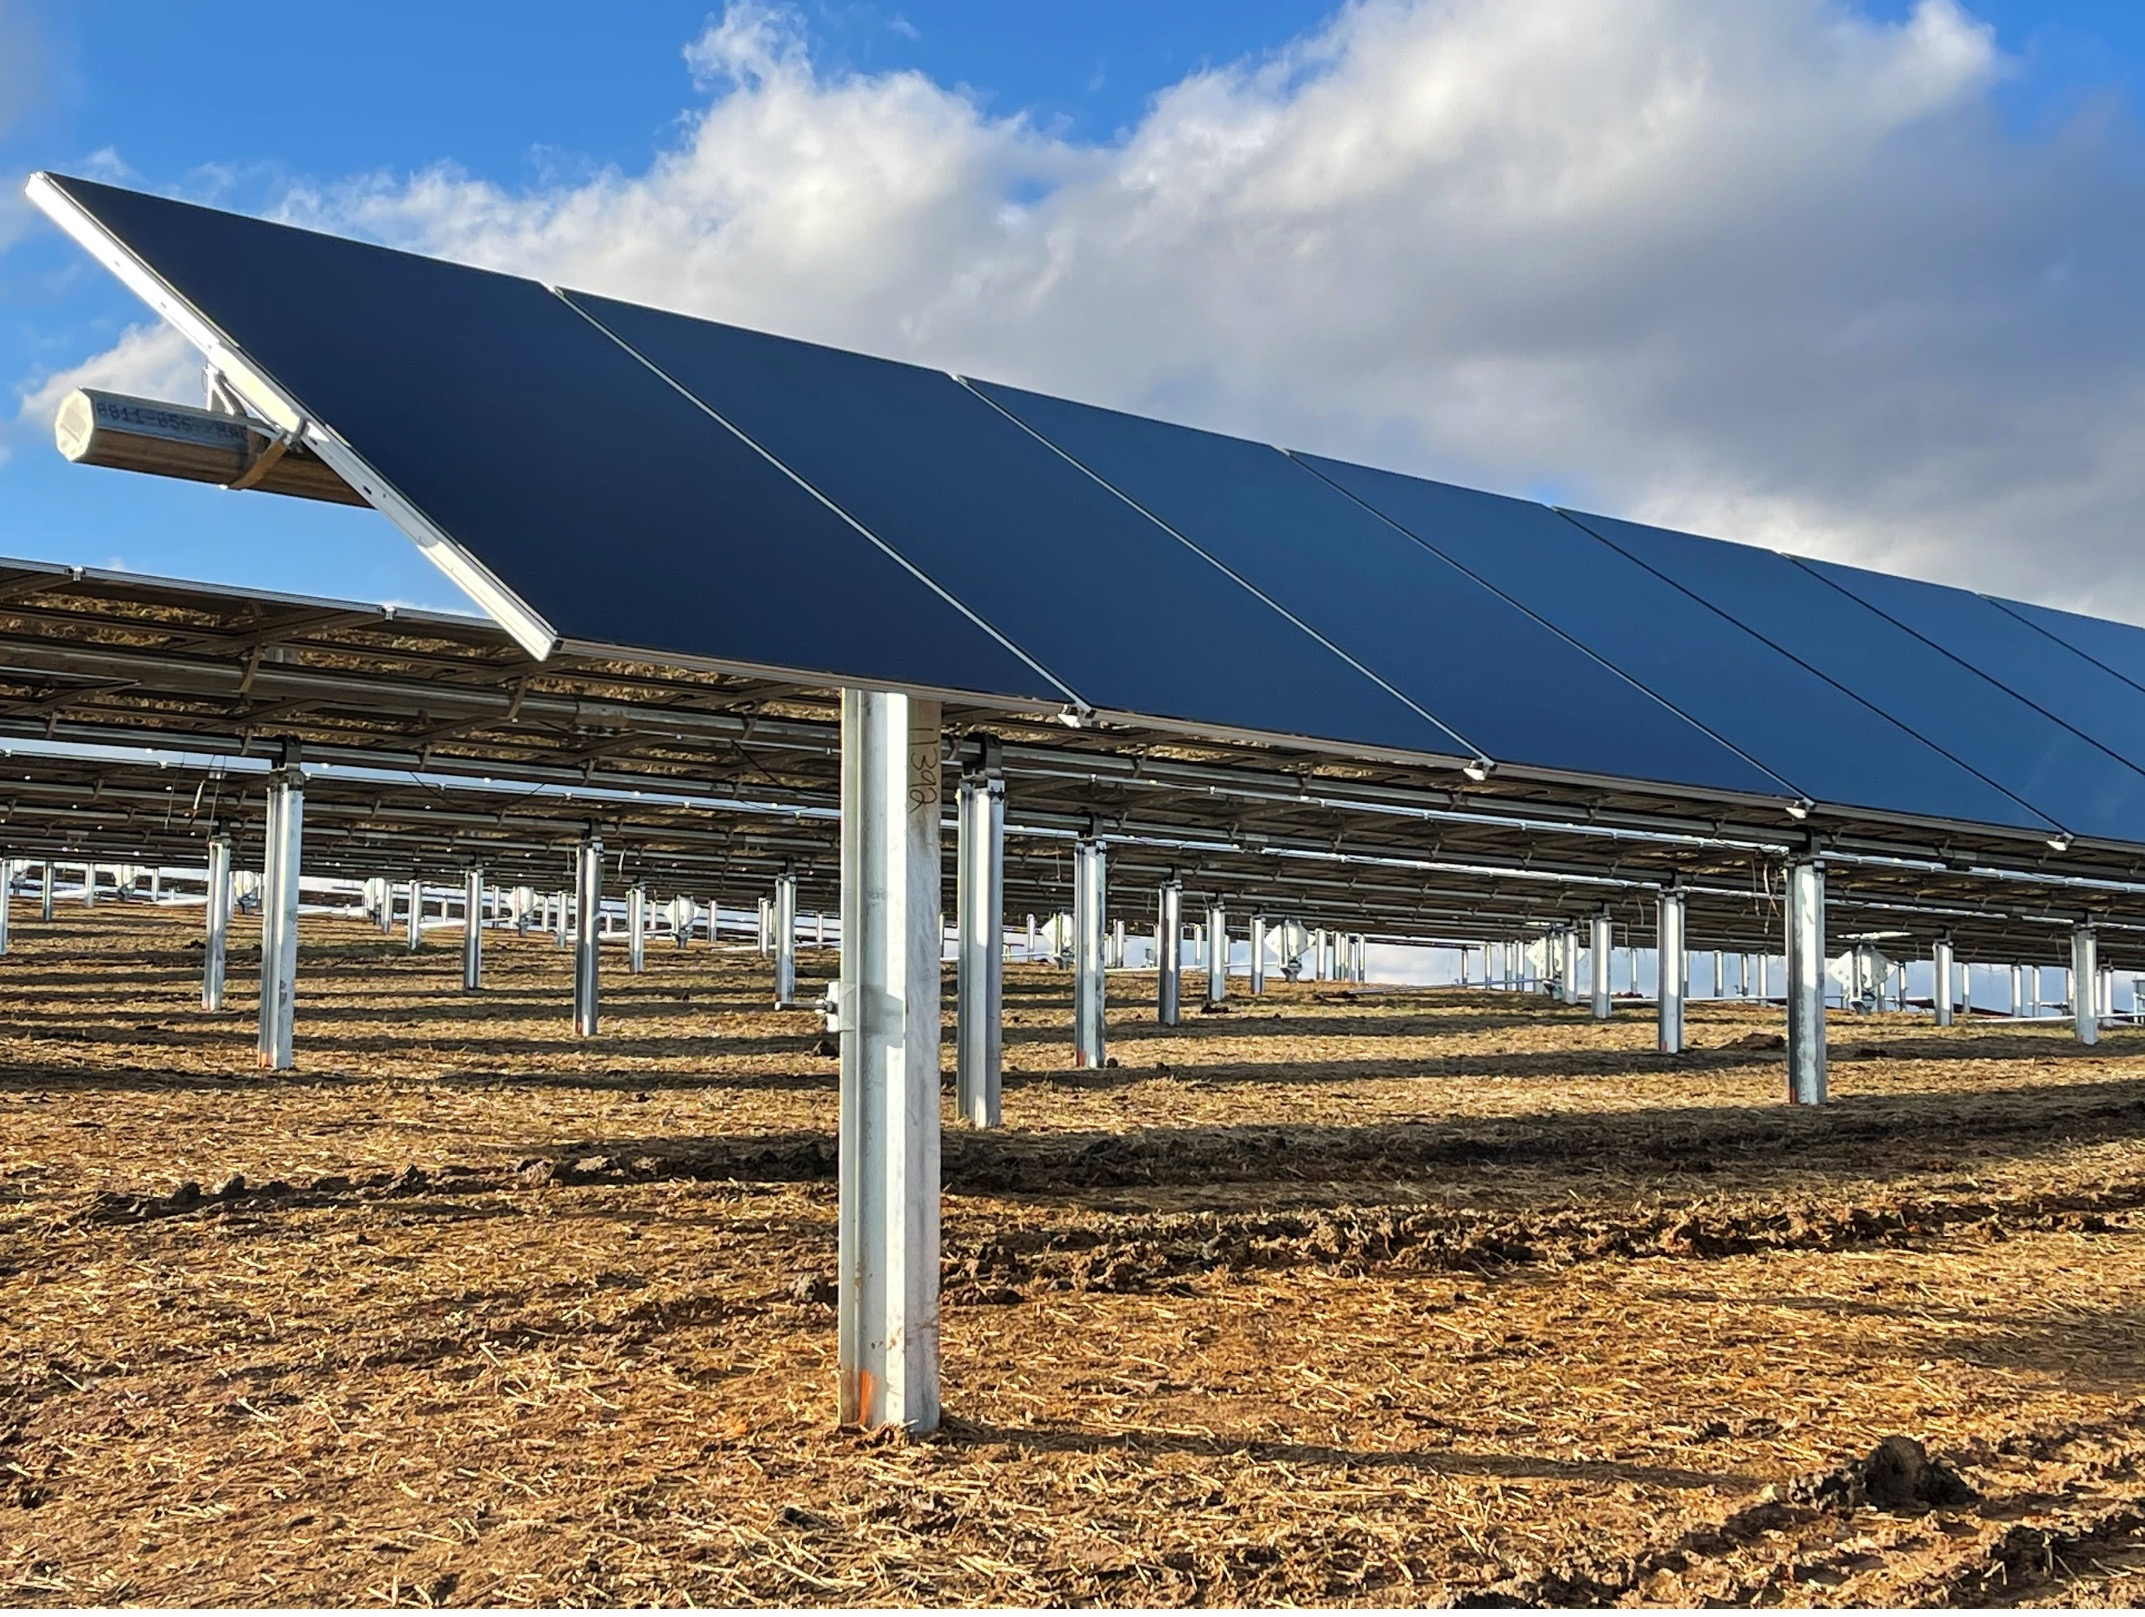 Energix, RPCS Partner to Complete over 90MW of Solar Tracker Projects